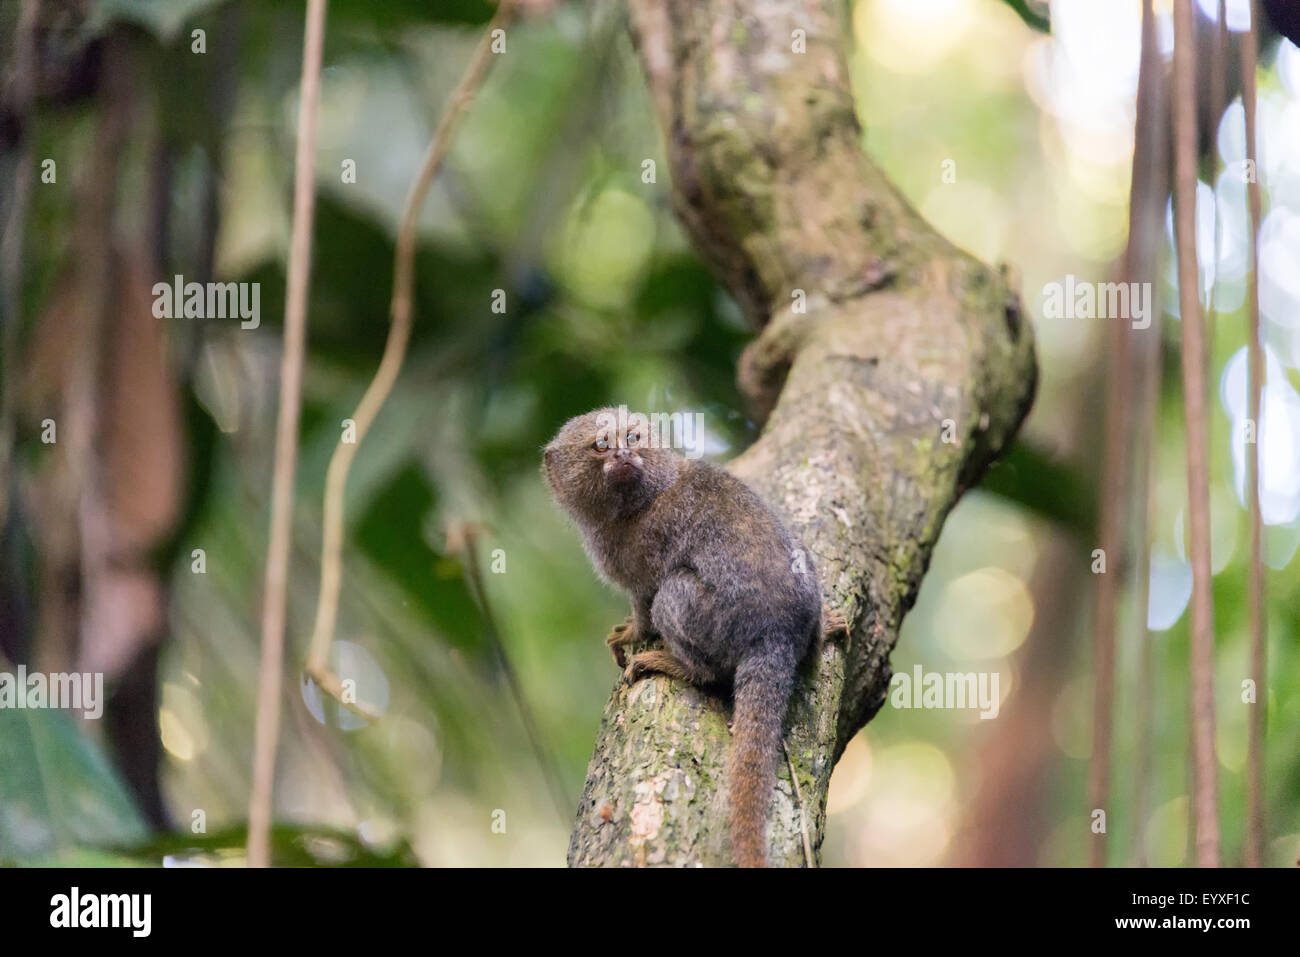 Pygmy monkey, the smallest monkey in the world, in the Amazon rain forest near Iquitos, Peru - Stock Image